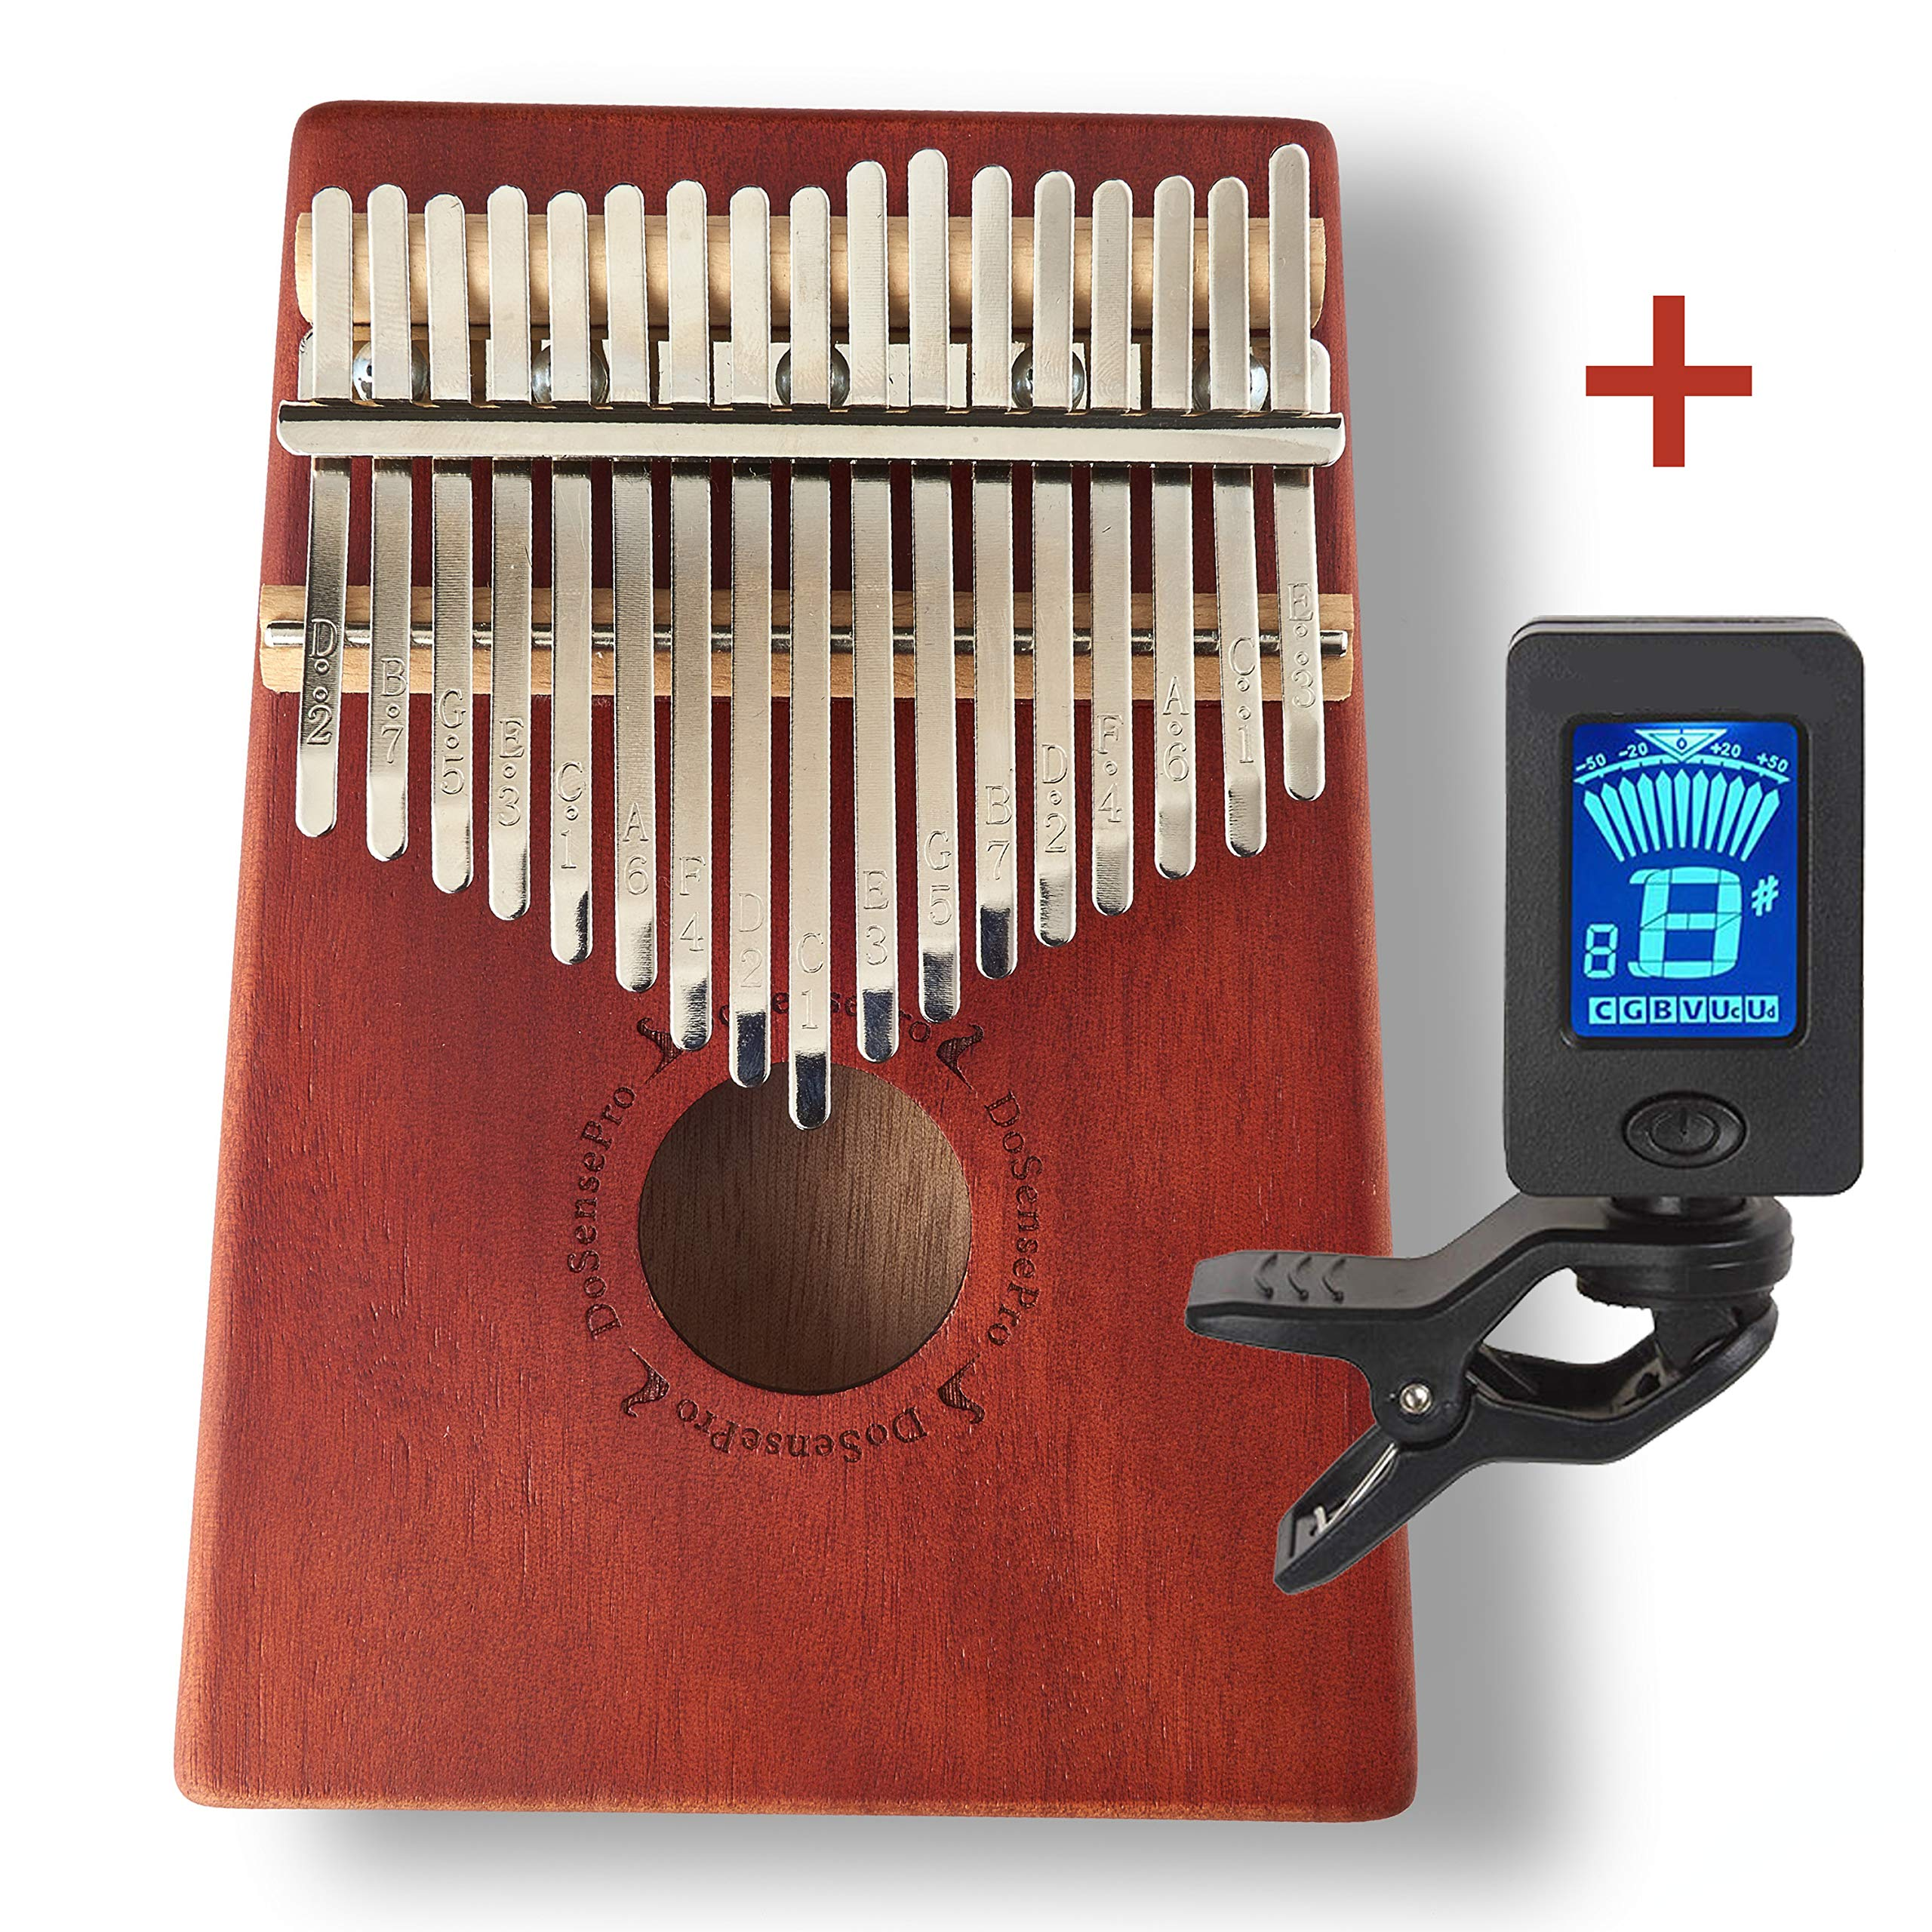 New Kalimba 17 Keys Thumb Piano + Bonus Chromatic Tuner Kit by DoSensePro. Solid Mahogany with Steel Bars Mbira Finger Piano in Tone C Includes Tuning Hammer, Storage Bag, Manual and Note Stickers by DoSensePro